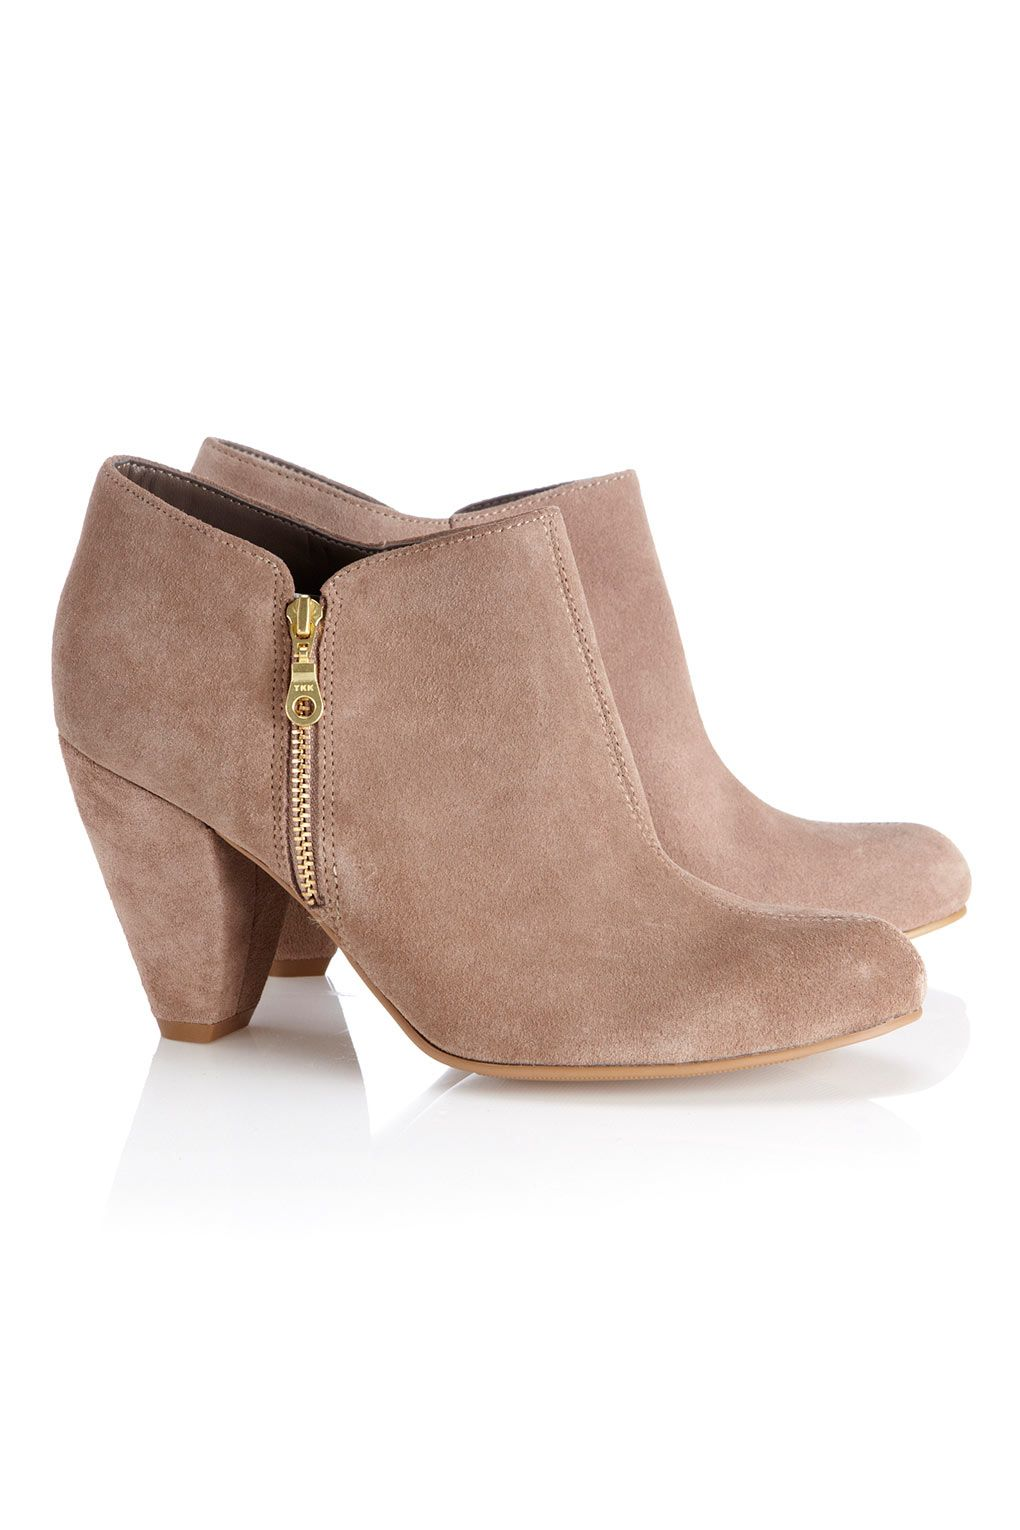 Neutral Curved Heel Ankle Boot // wallis